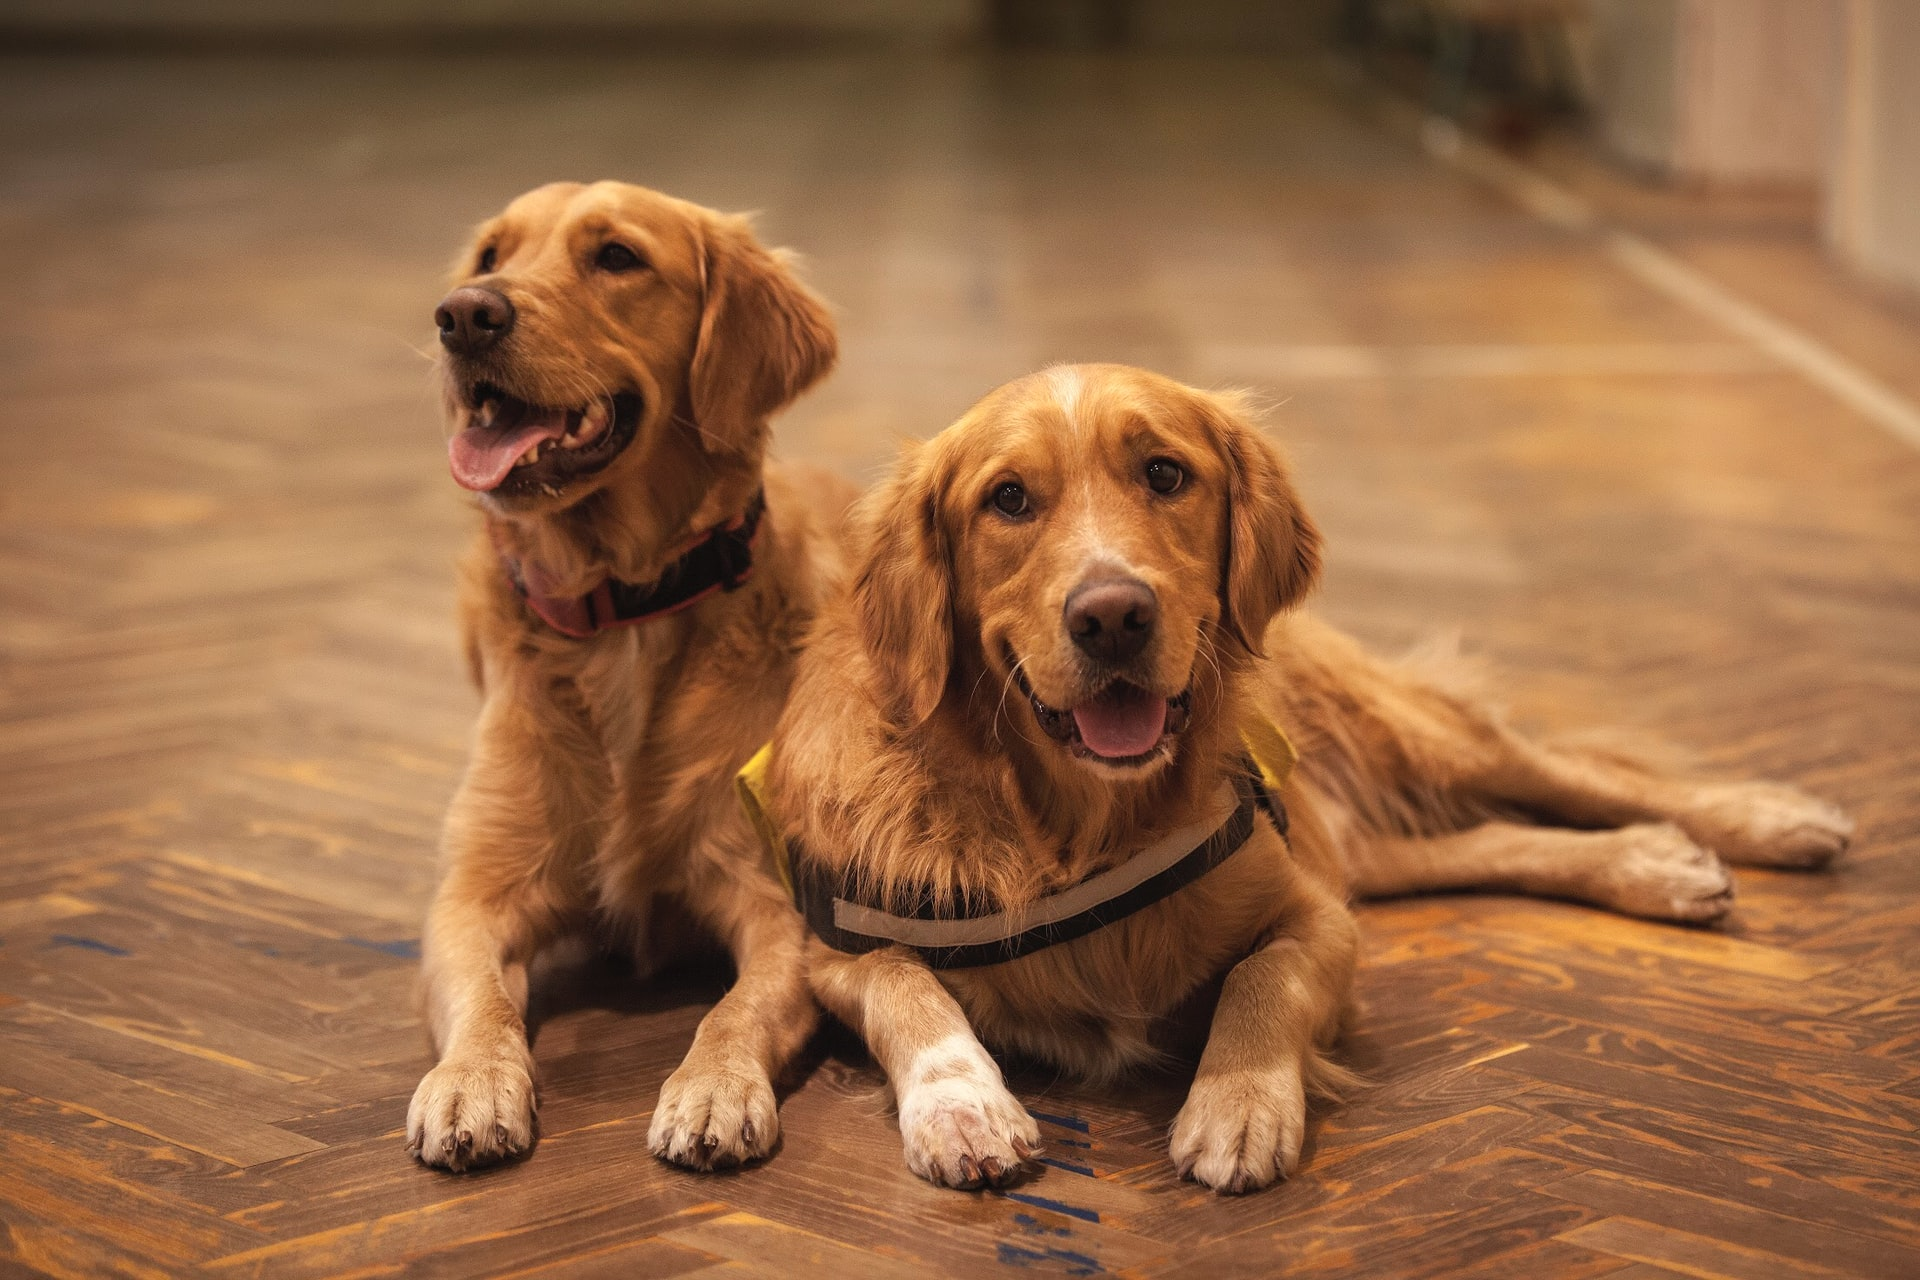 Two adult Golden Retriever dogs laying together on wooden floor.